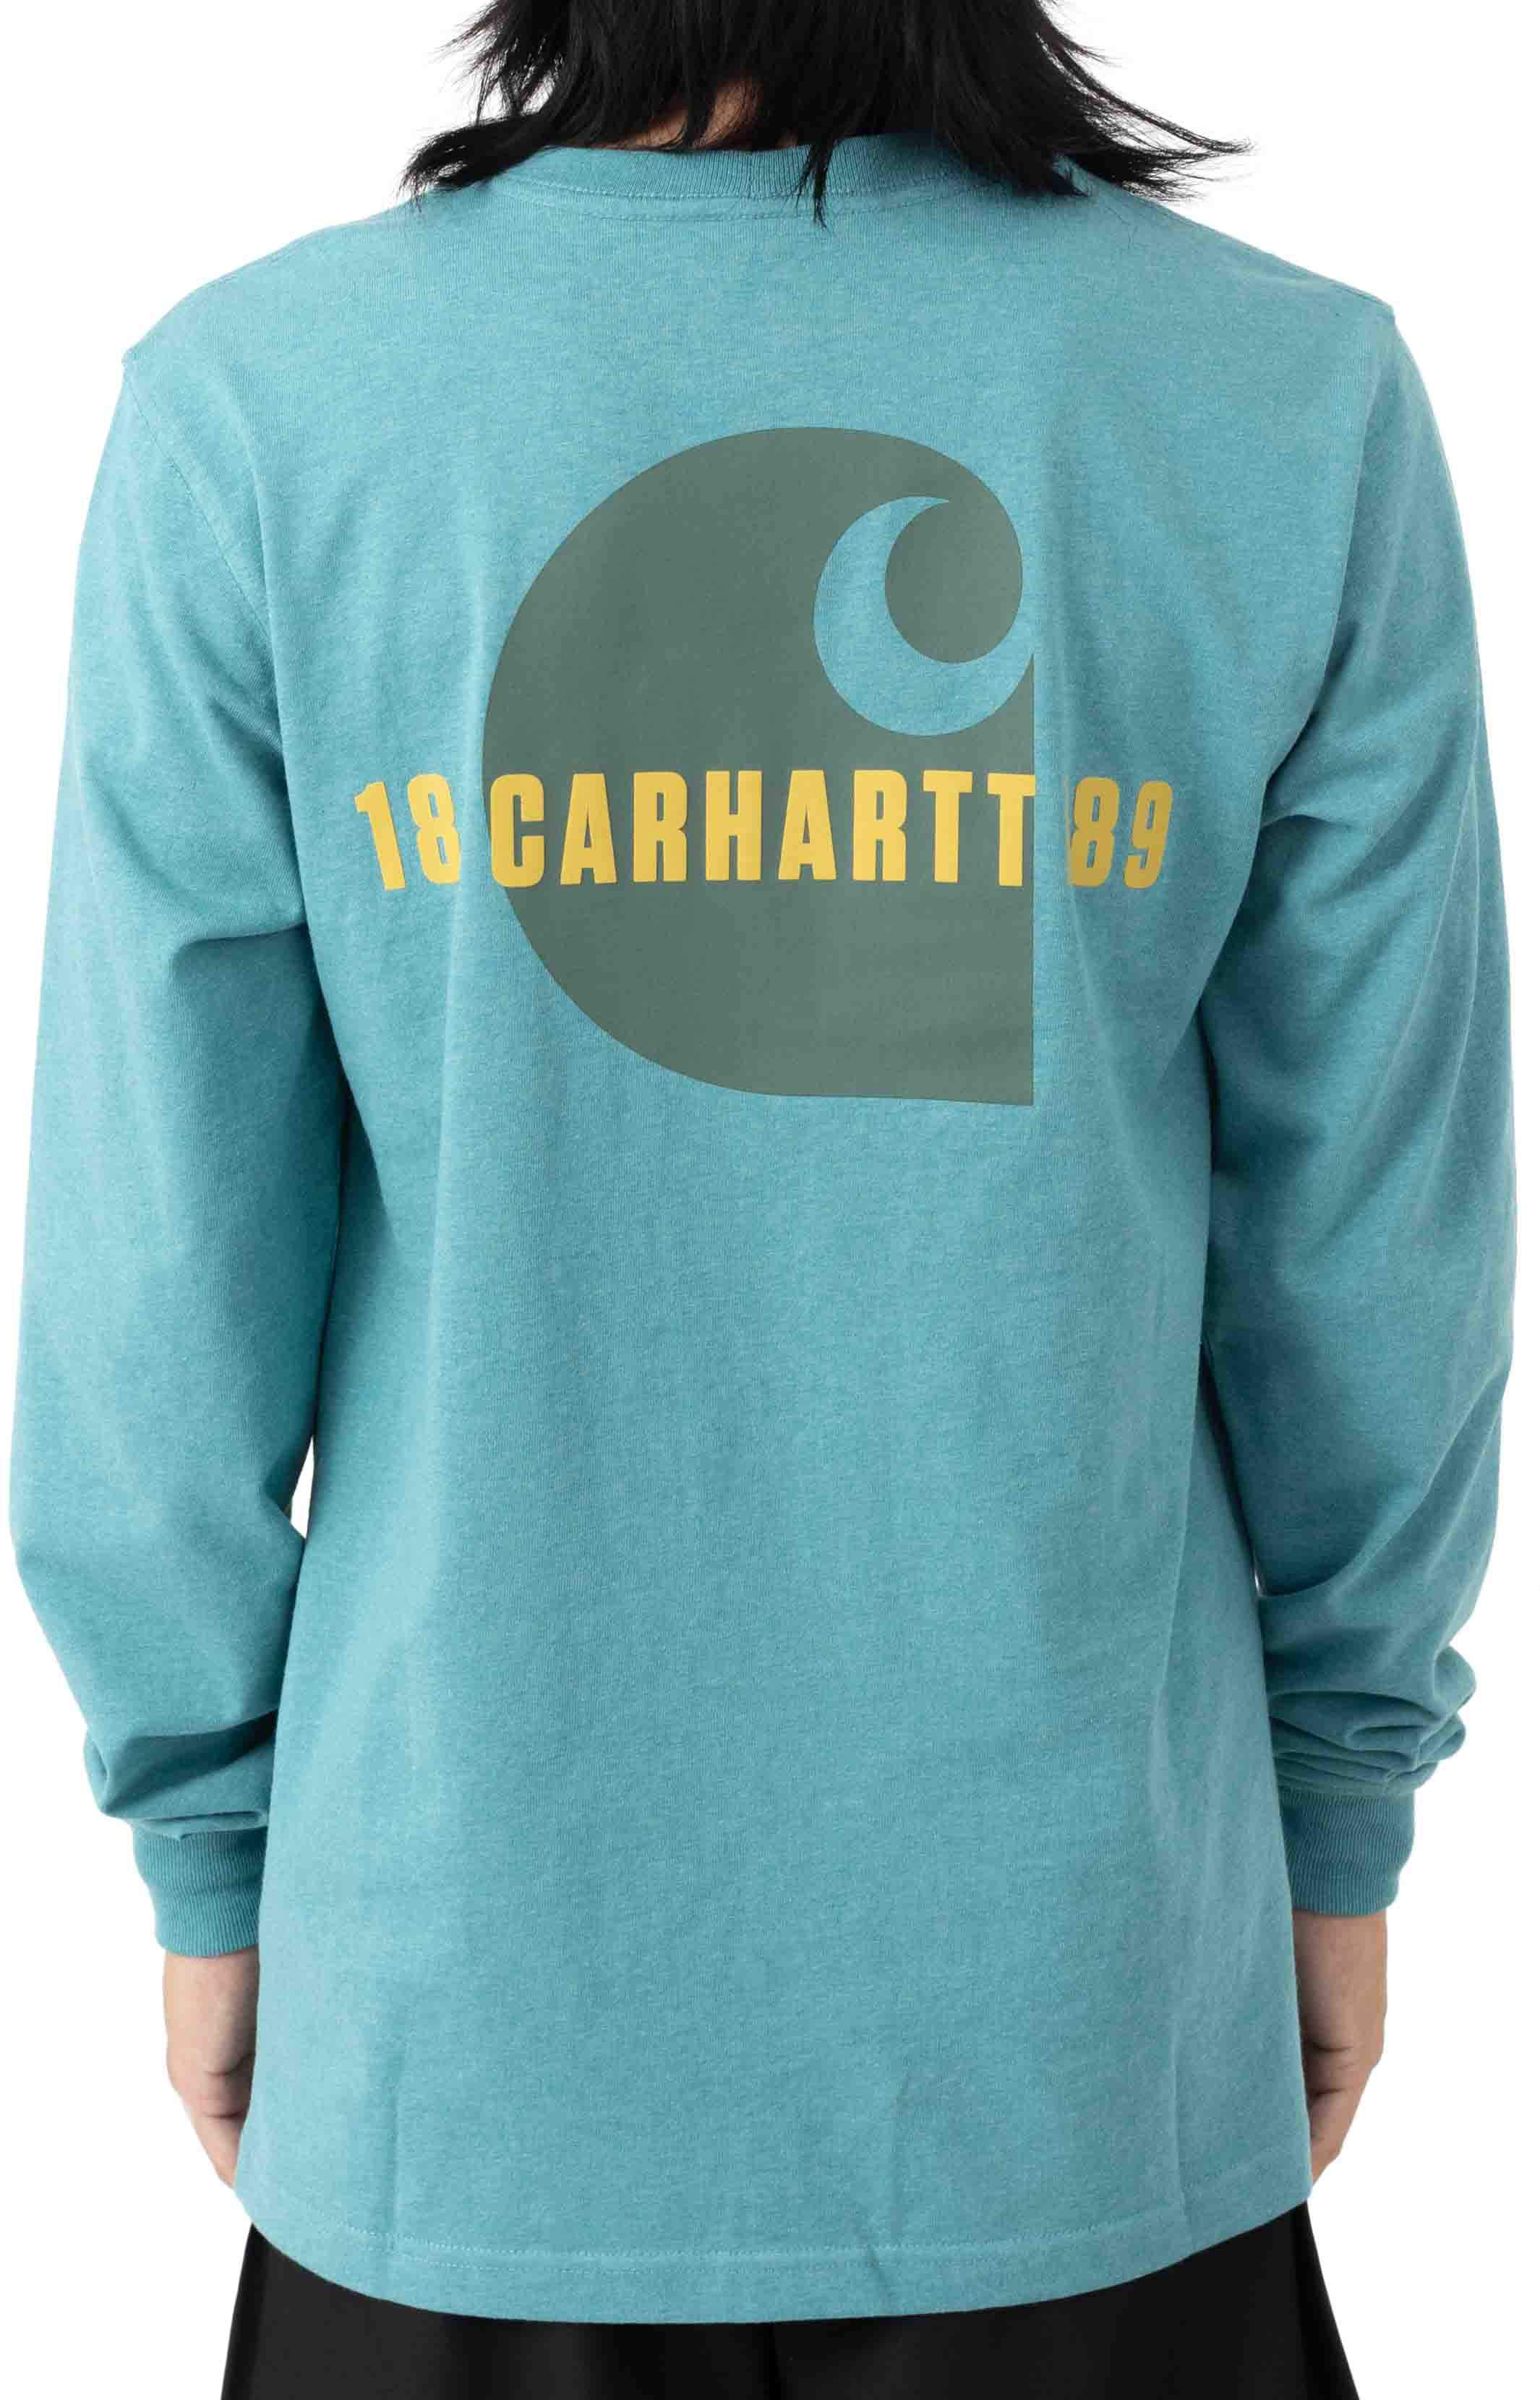 (105054) Loose Fit Heavyweight L/S Pocket Carhartt C Graphic T-Shirt - Blue Spruce Heather